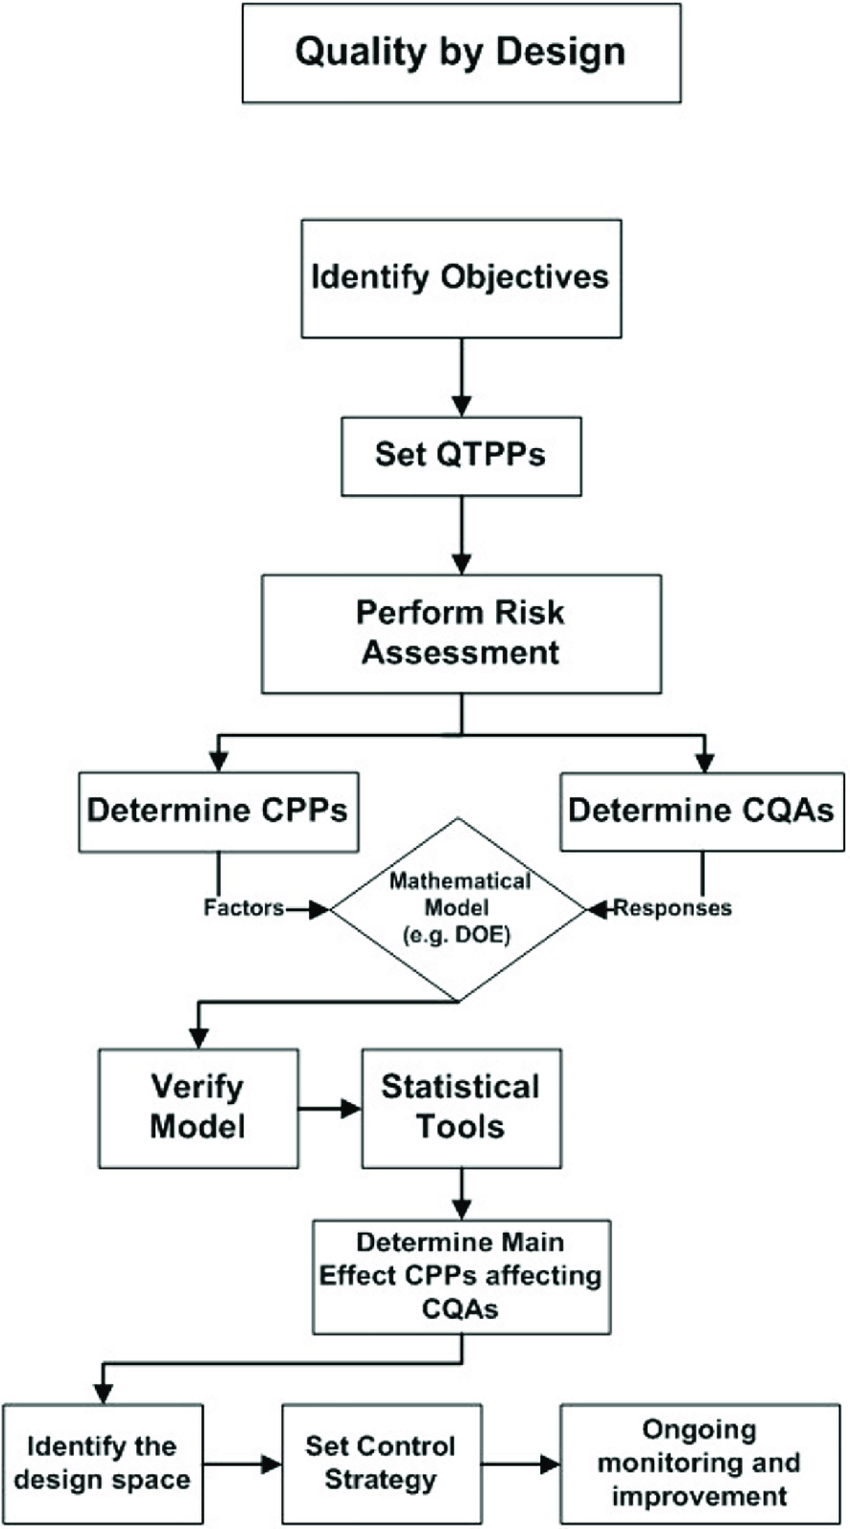 hight resolution of flow chart outlining the elements of qbd qtpp quality targeted product profile cpps